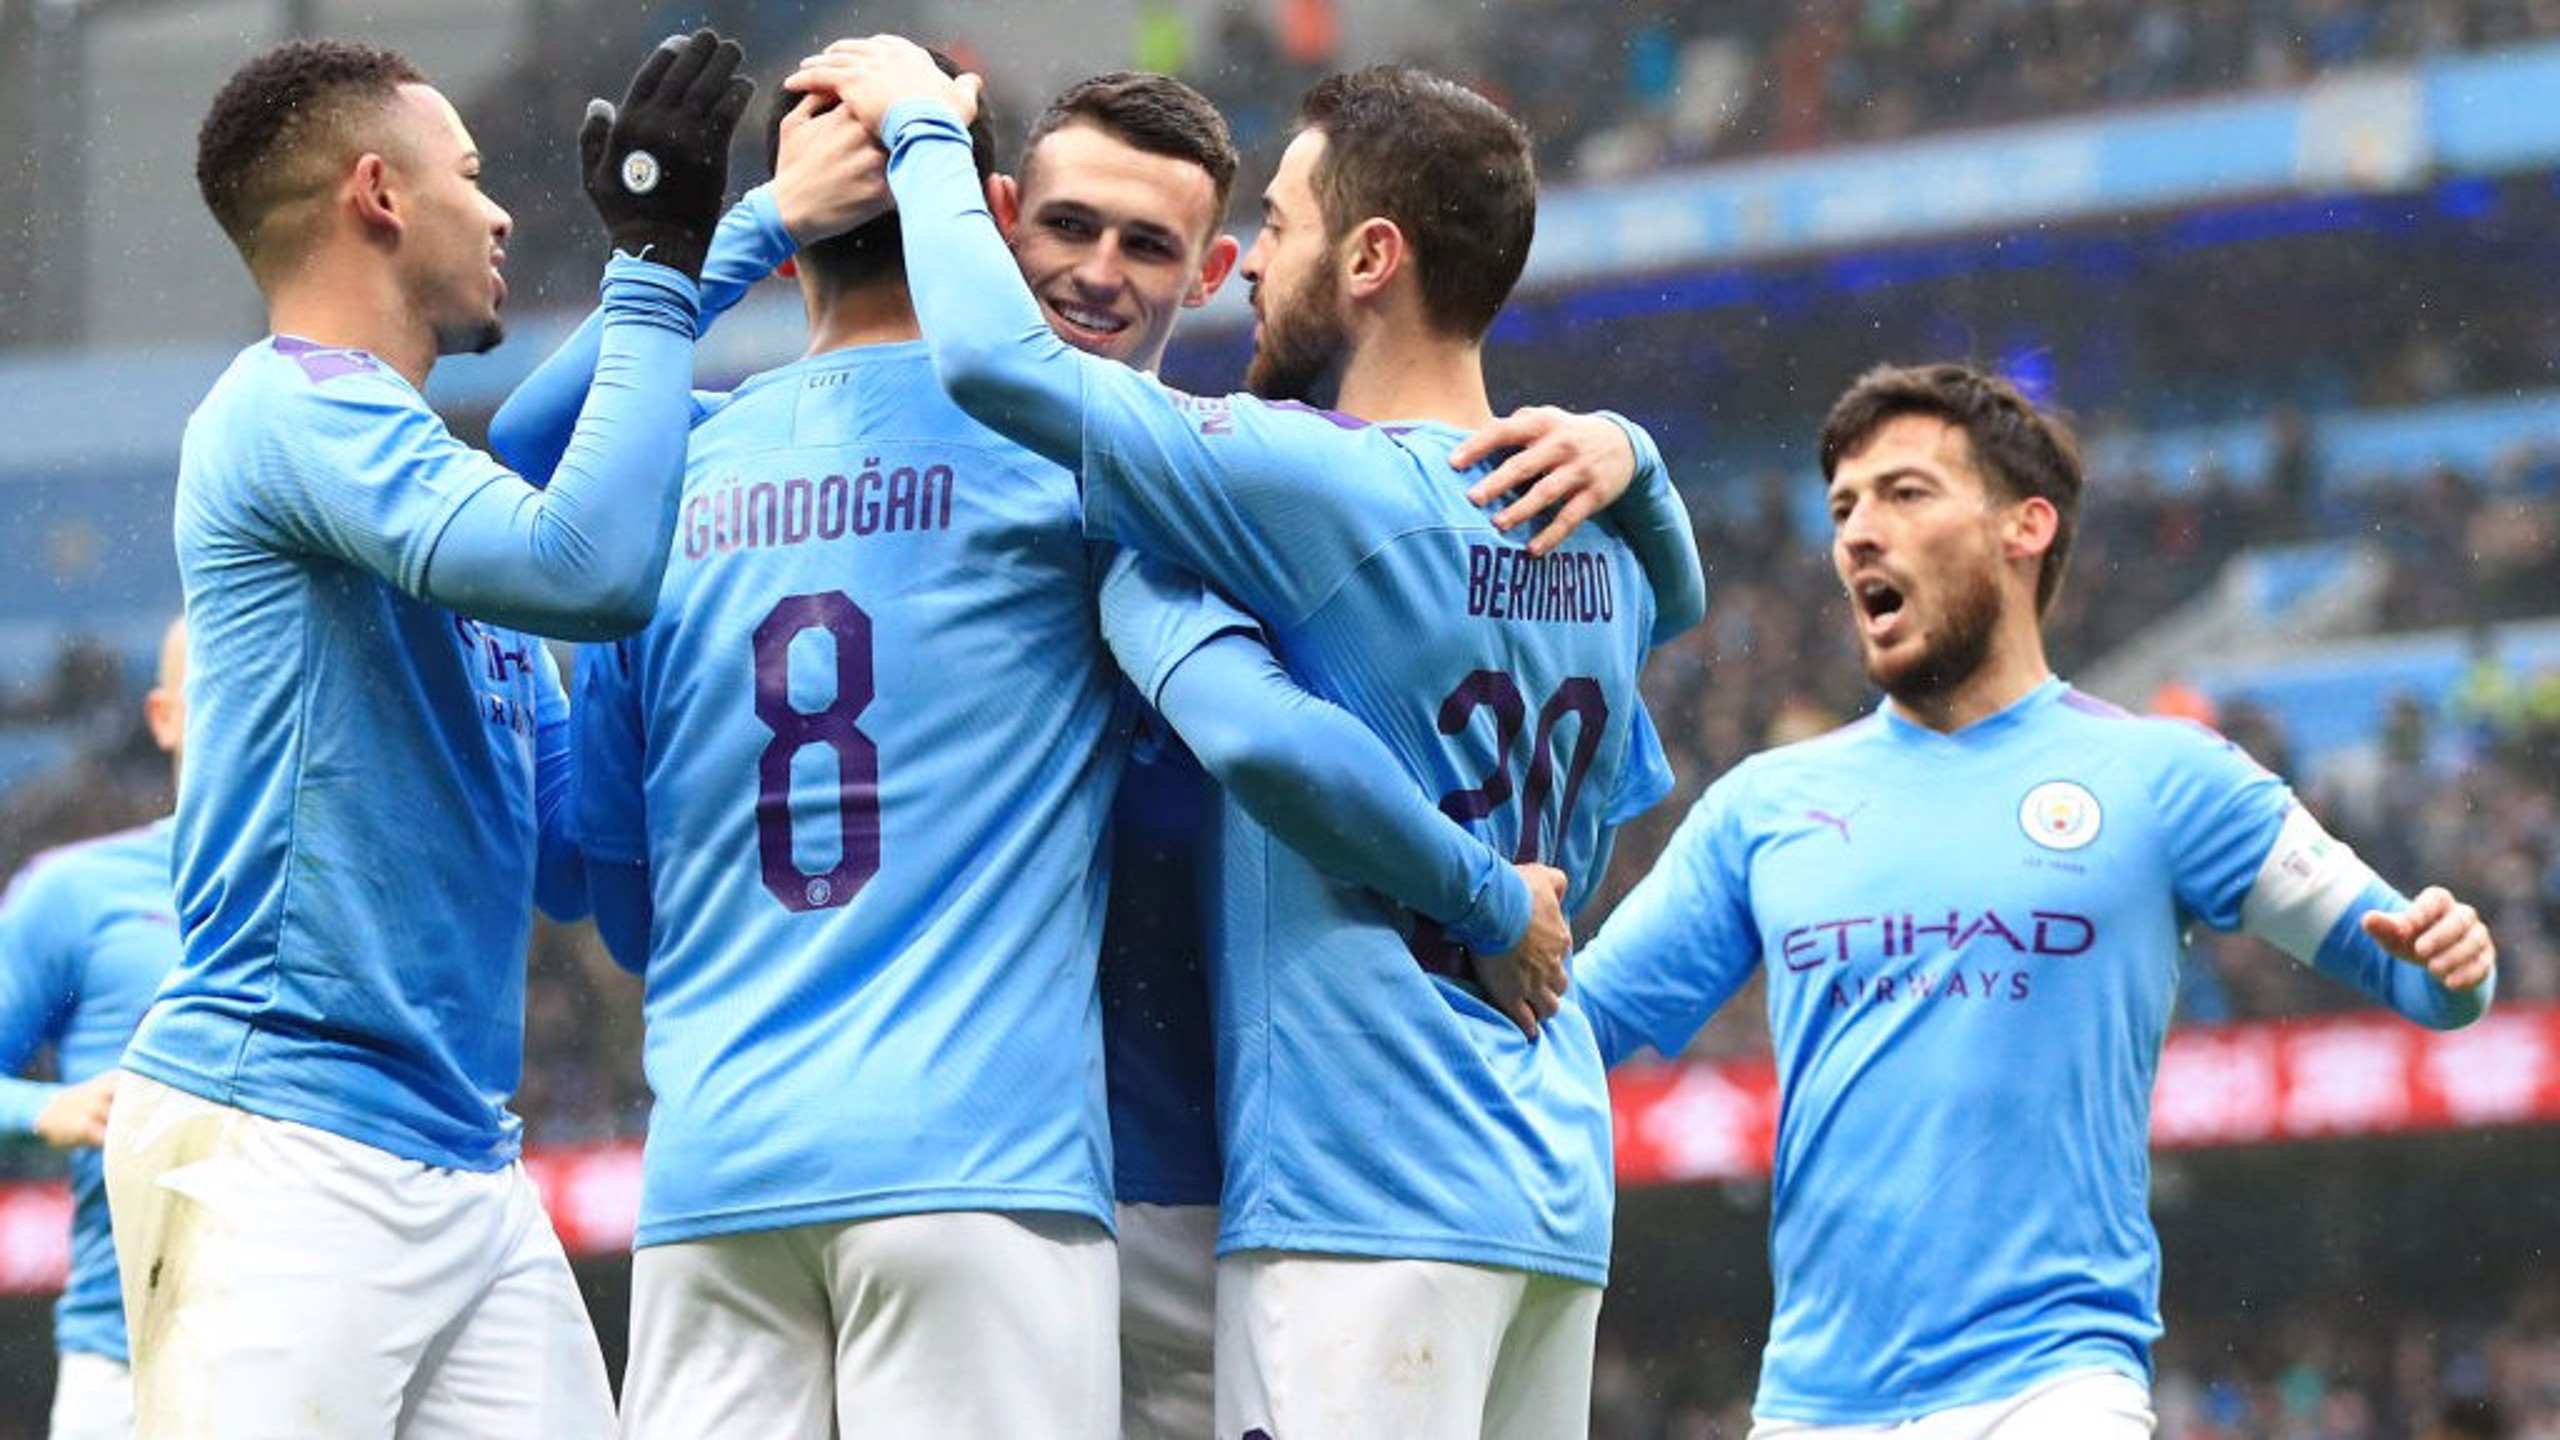 GROUP HUG: The players share the love after Gundogan's opening goal.